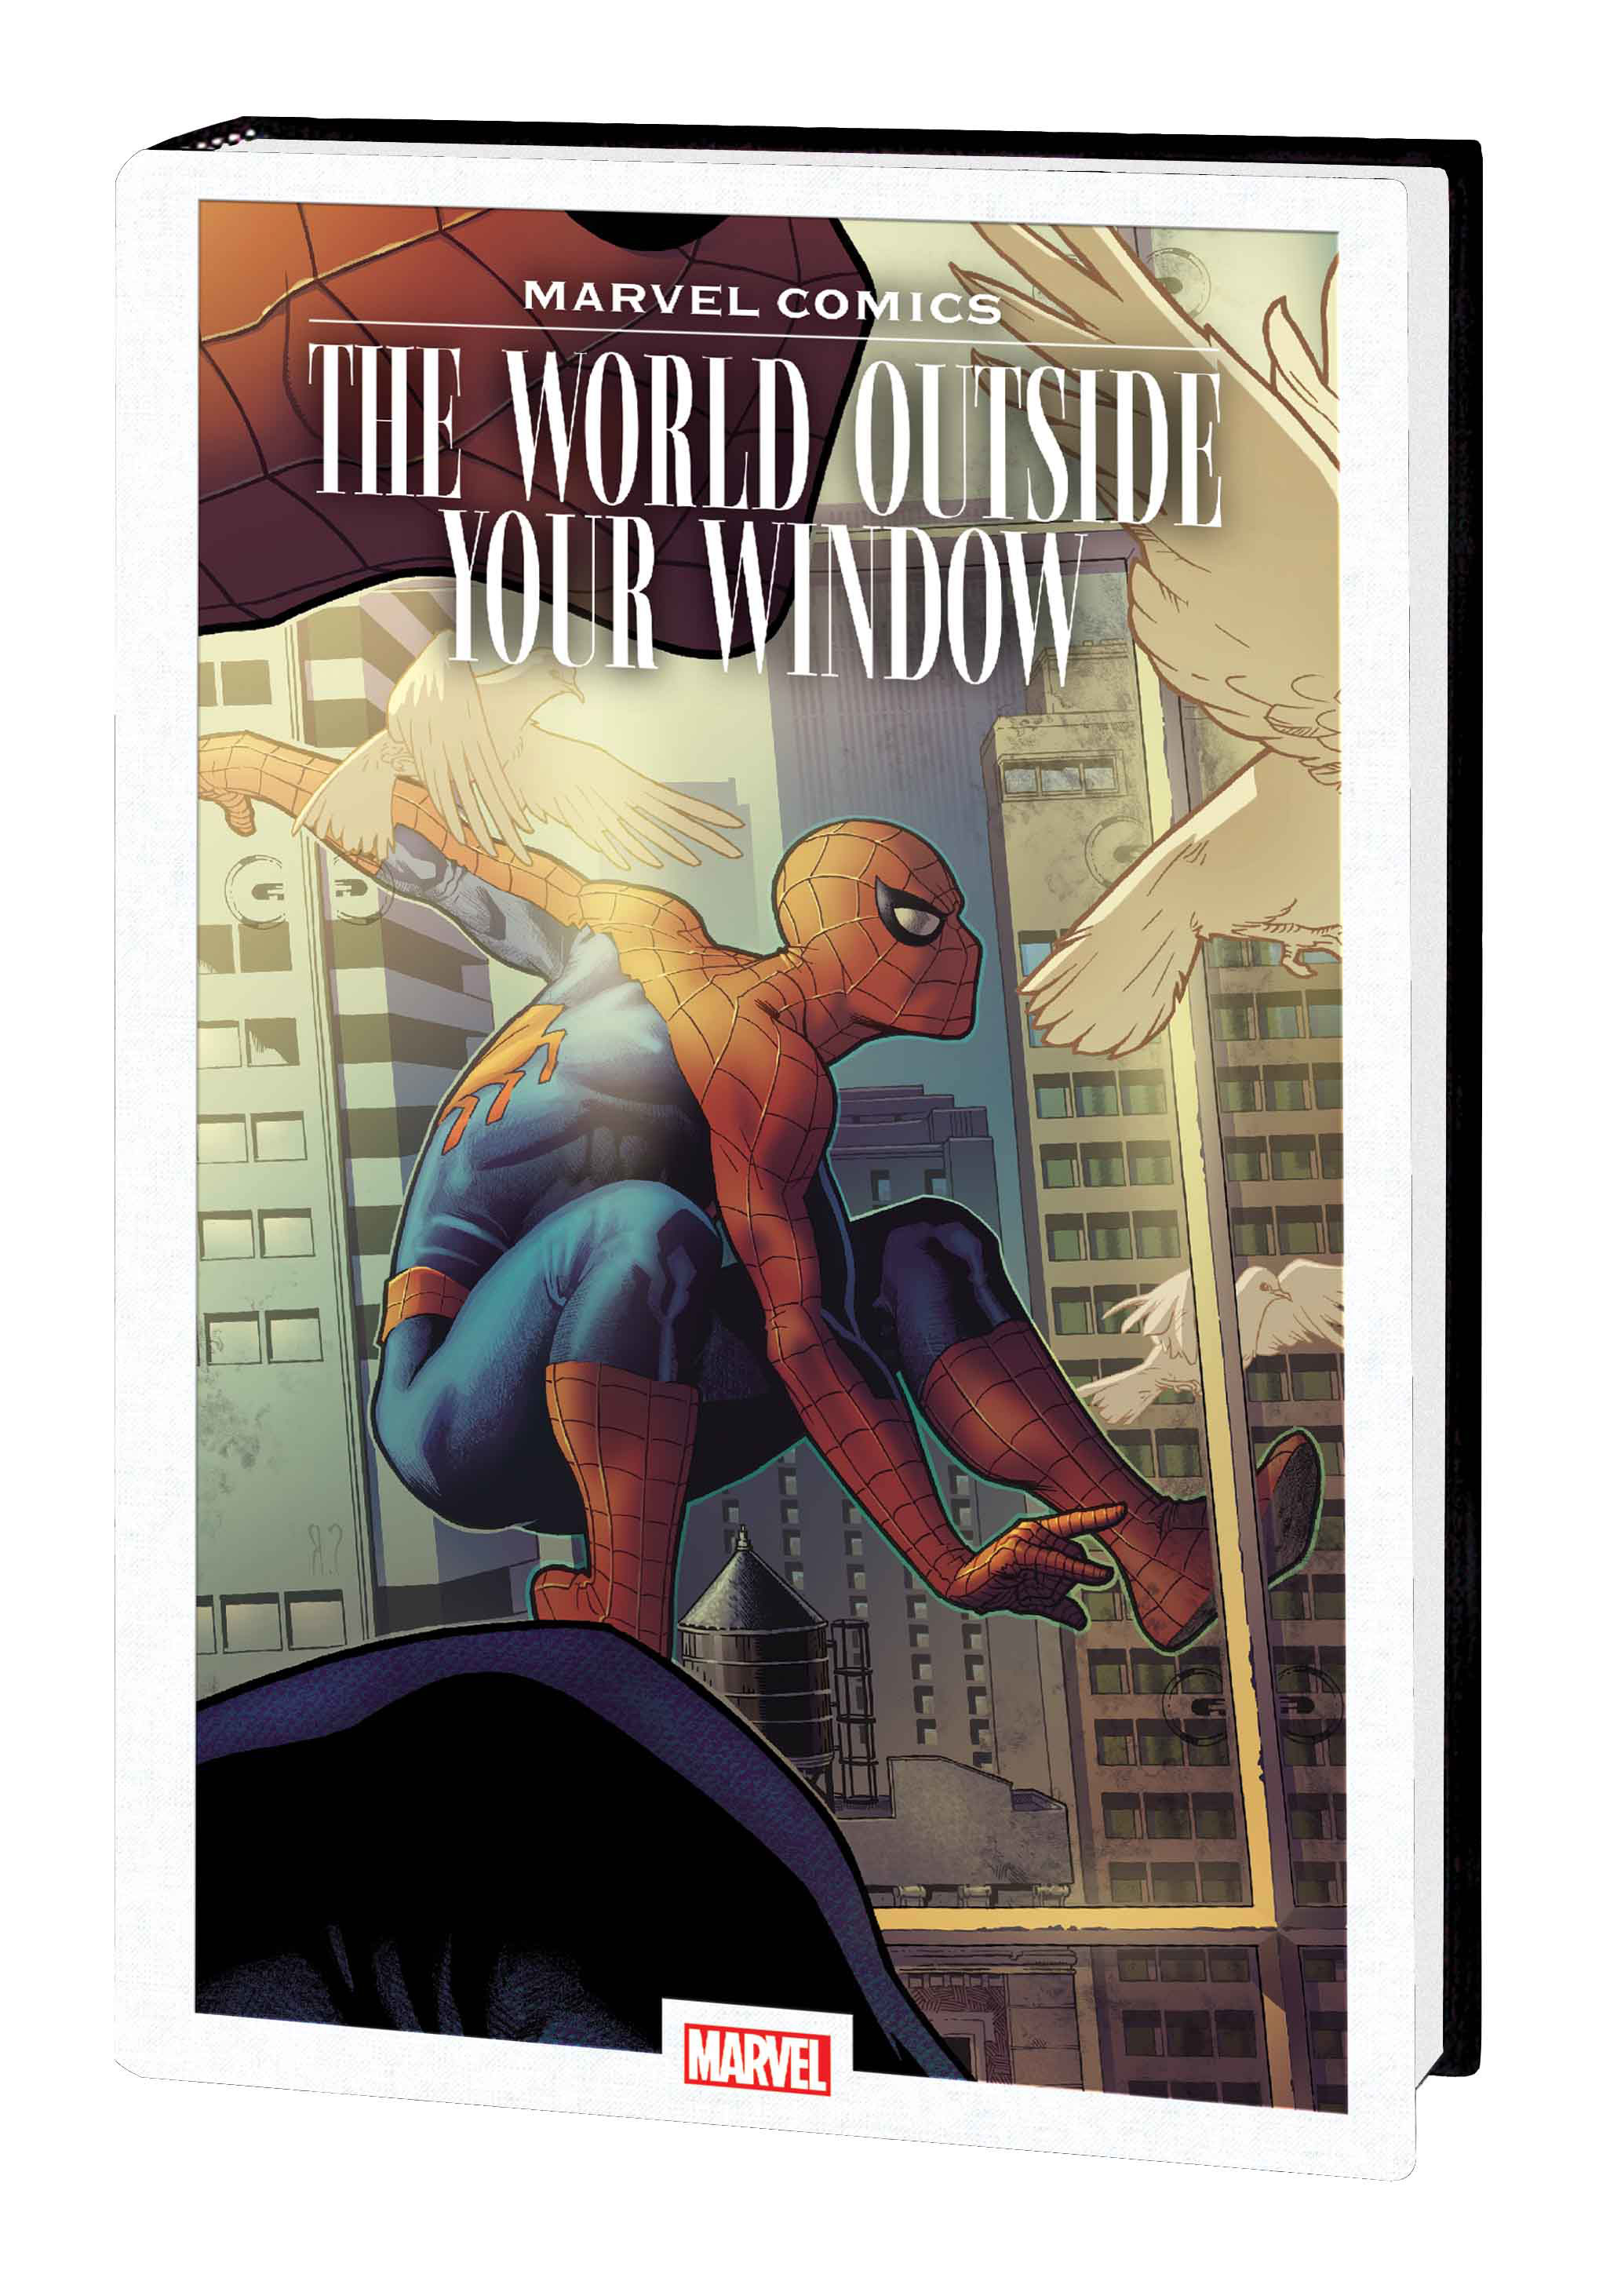 MARVEL COMICS HC WORLD OUTSIDE YOUR WINDOW